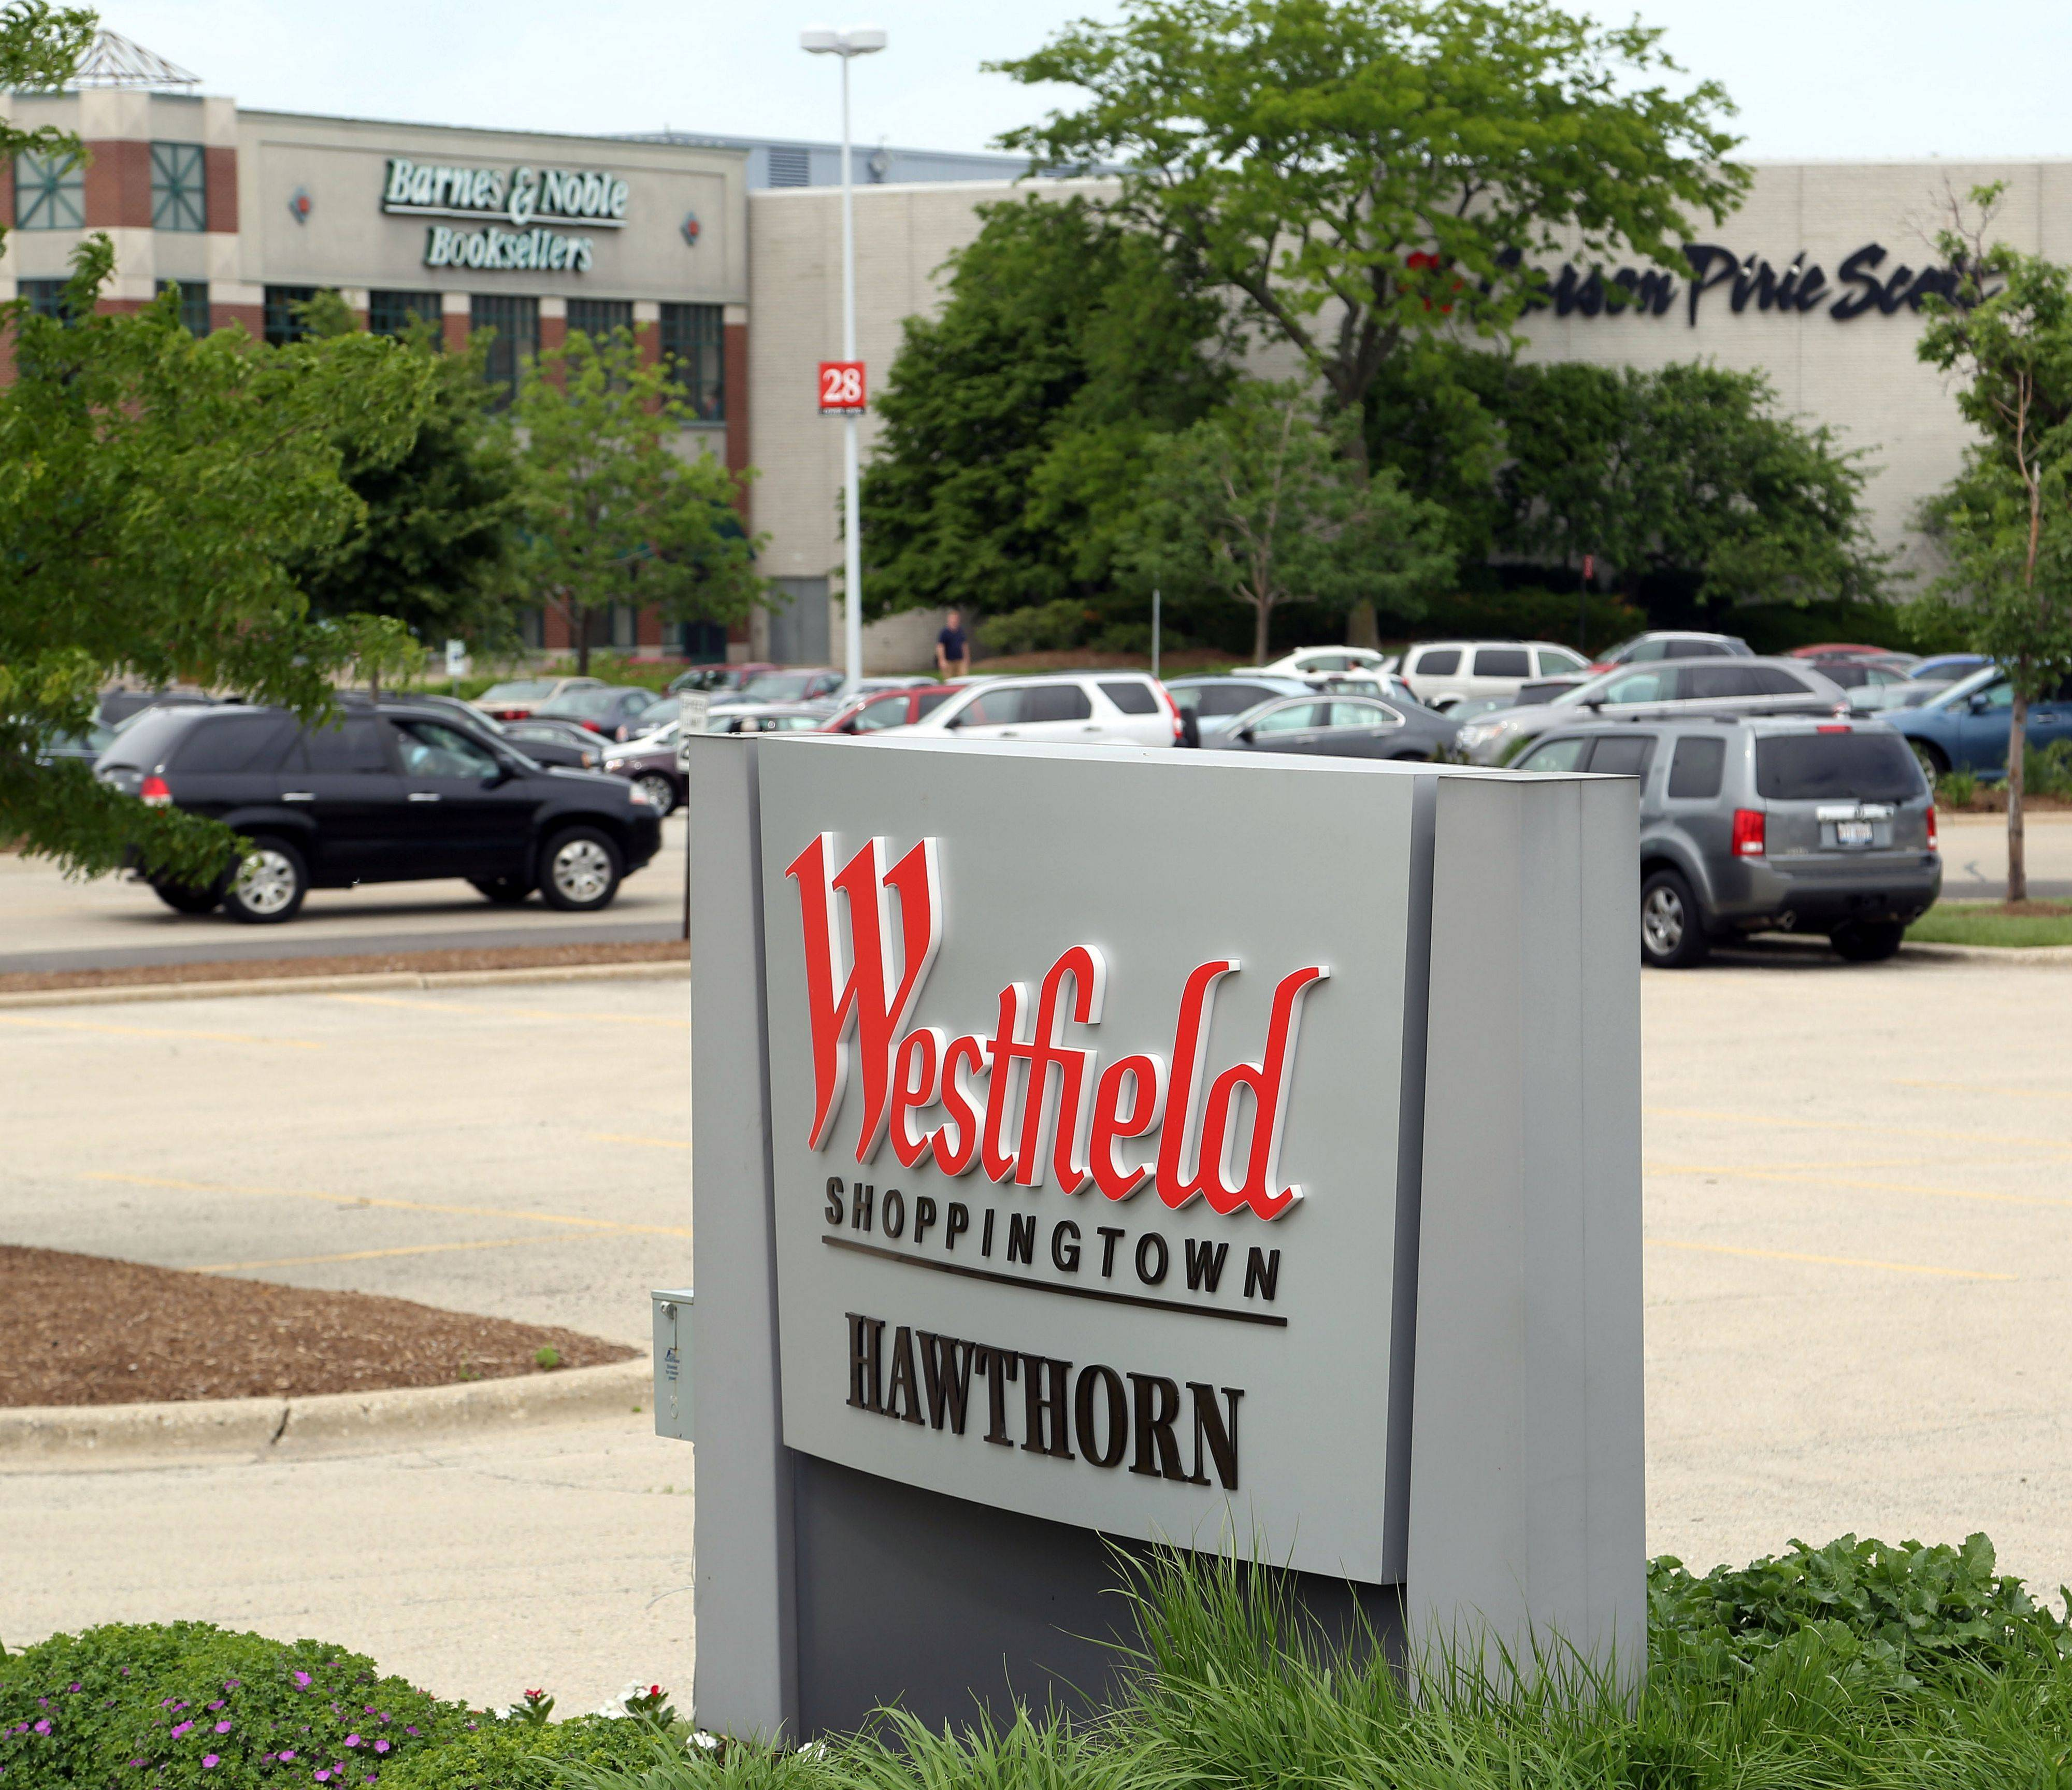 Plans for a $50 million renovation and expansion at Westfield Hawthorn shopping center in Vernon Hills are proceeding.